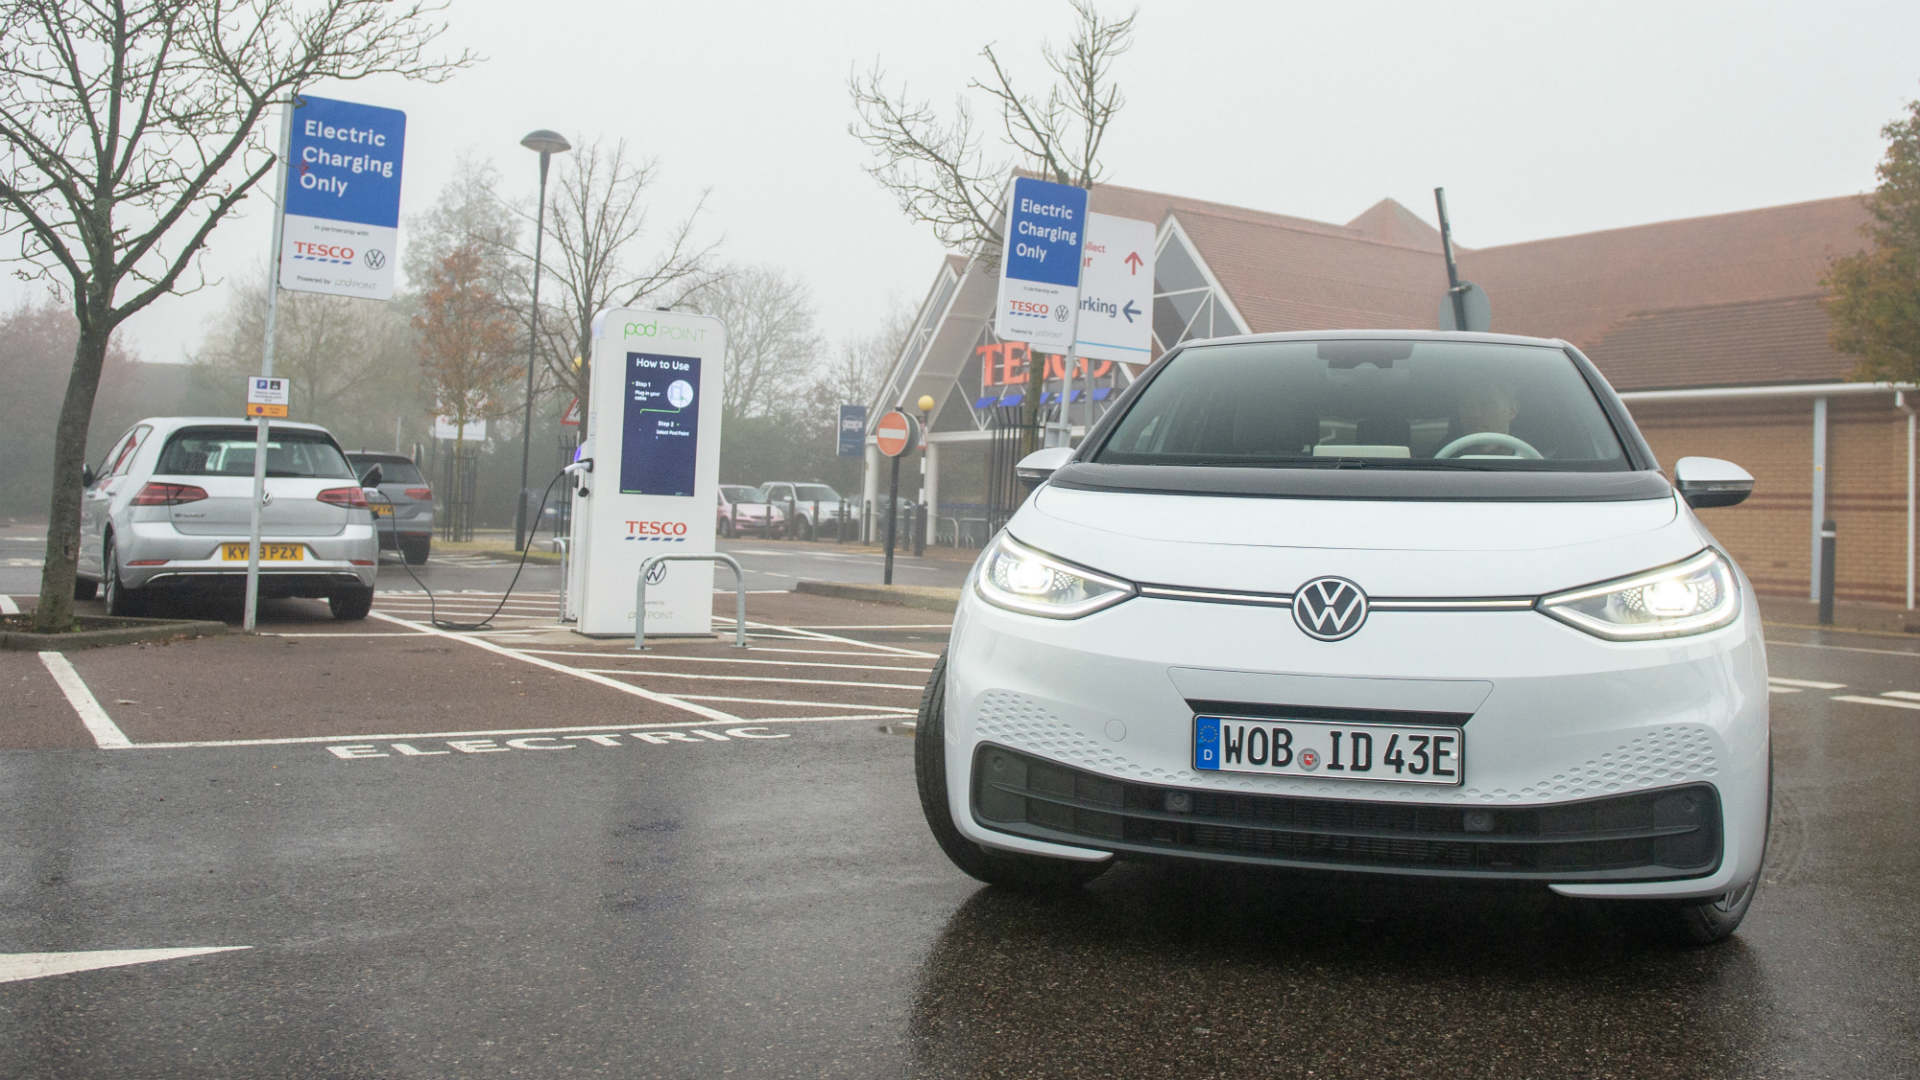 Volkswagen ID.3 at Tesco